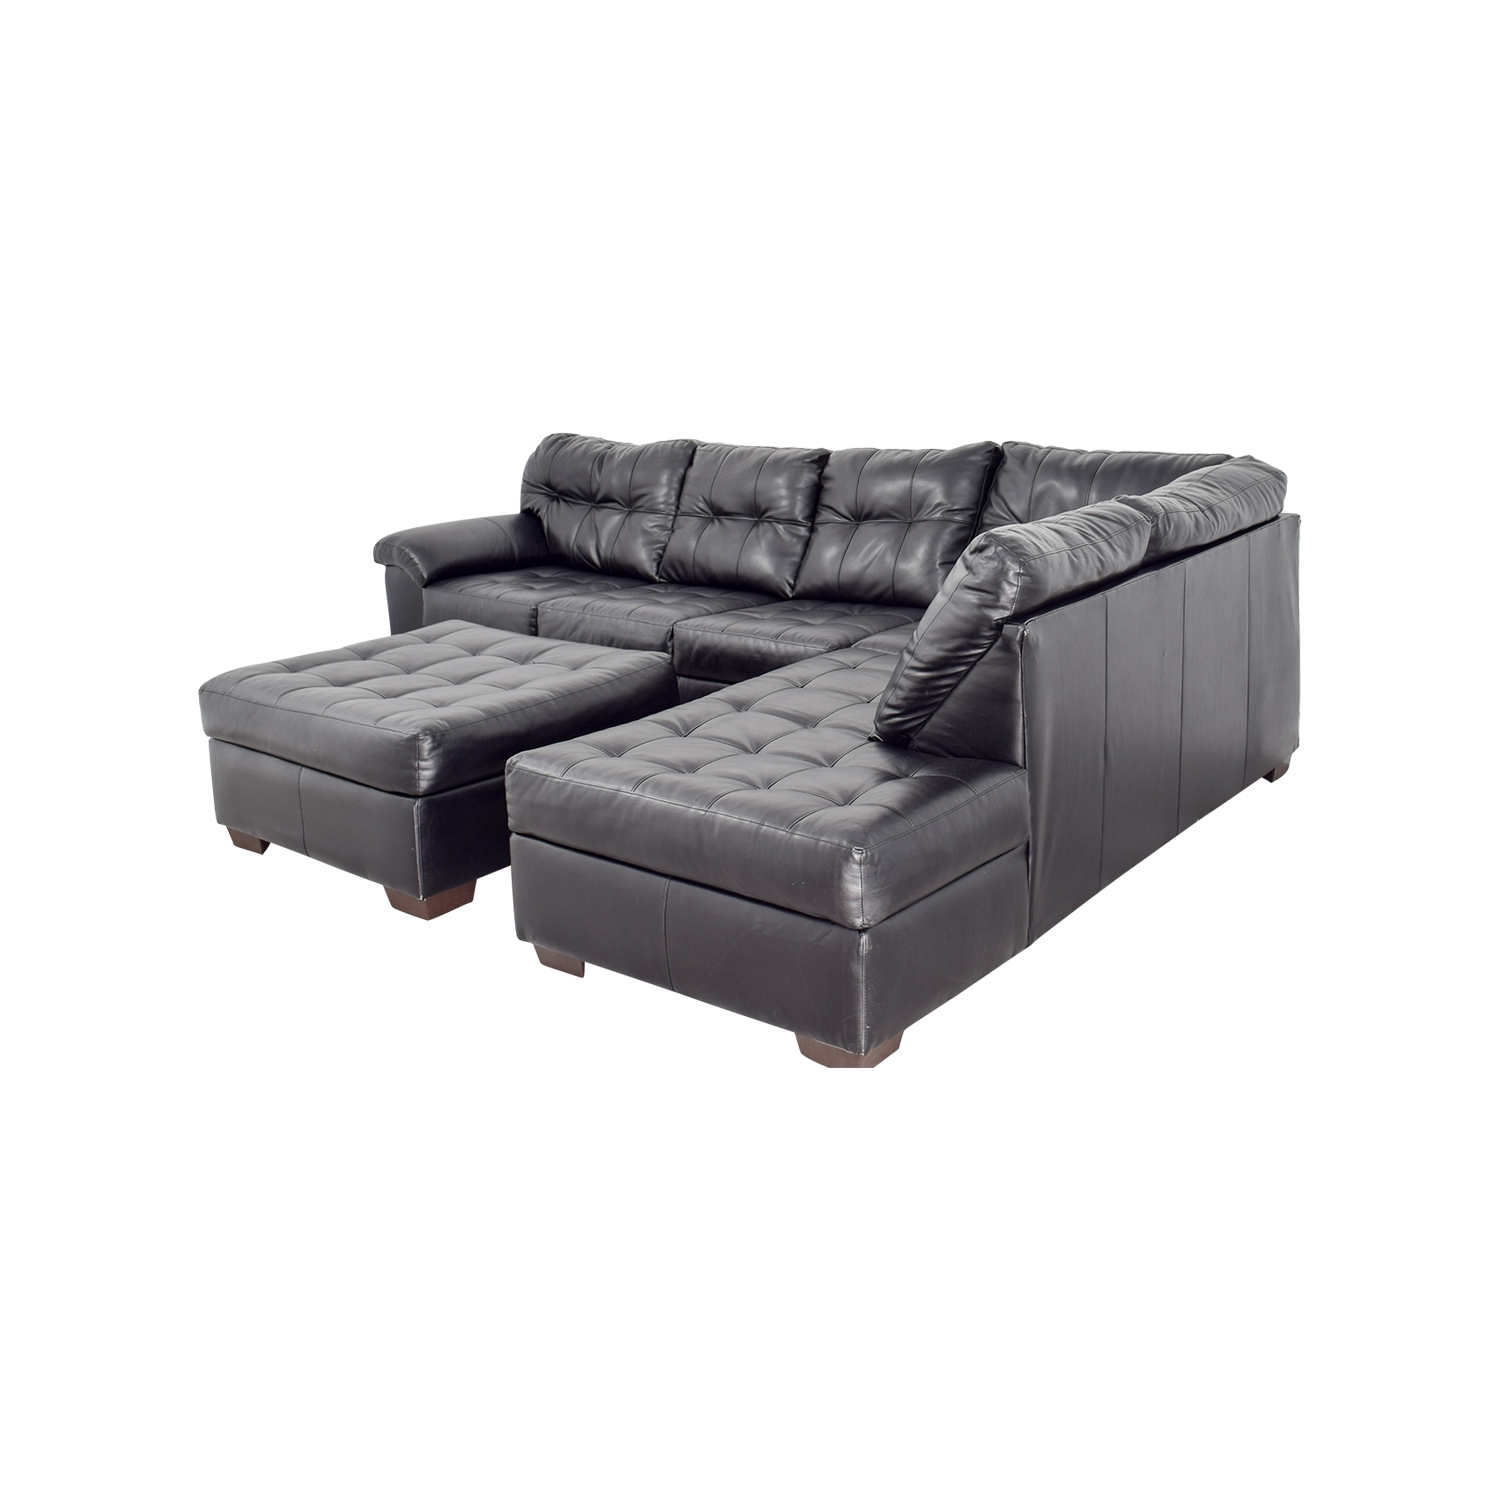 [%81% Off – Black Leather Tufted Sectional Sofa And Ottoman / Sofas Within 2019 Tufted Sectional Sofas With Chaise|tufted Sectional Sofas With Chaise Regarding Well Liked 81% Off – Black Leather Tufted Sectional Sofa And Ottoman / Sofas|fashionable Tufted Sectional Sofas With Chaise Intended For 81% Off – Black Leather Tufted Sectional Sofa And Ottoman / Sofas|trendy 81% Off – Black Leather Tufted Sectional Sofa And Ottoman / Sofas For Tufted Sectional Sofas With Chaise%] (View 9 of 20)